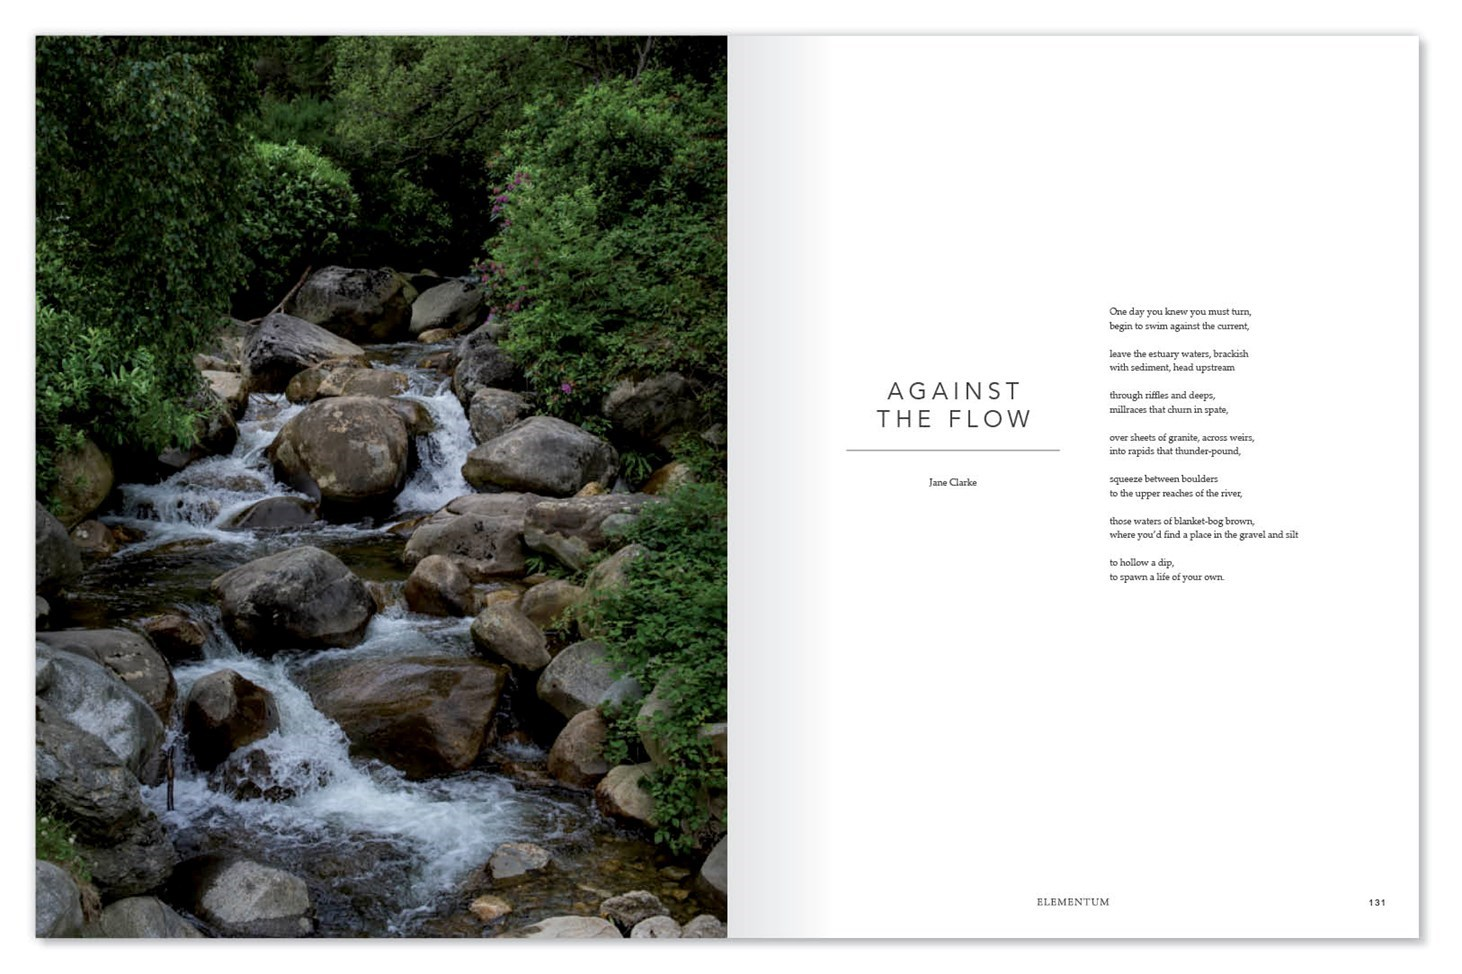 Elementum, design, print, publication, magazine, nature, clean, presentation, layout, Design79, Against the flow, river, stream, green, Cornwall